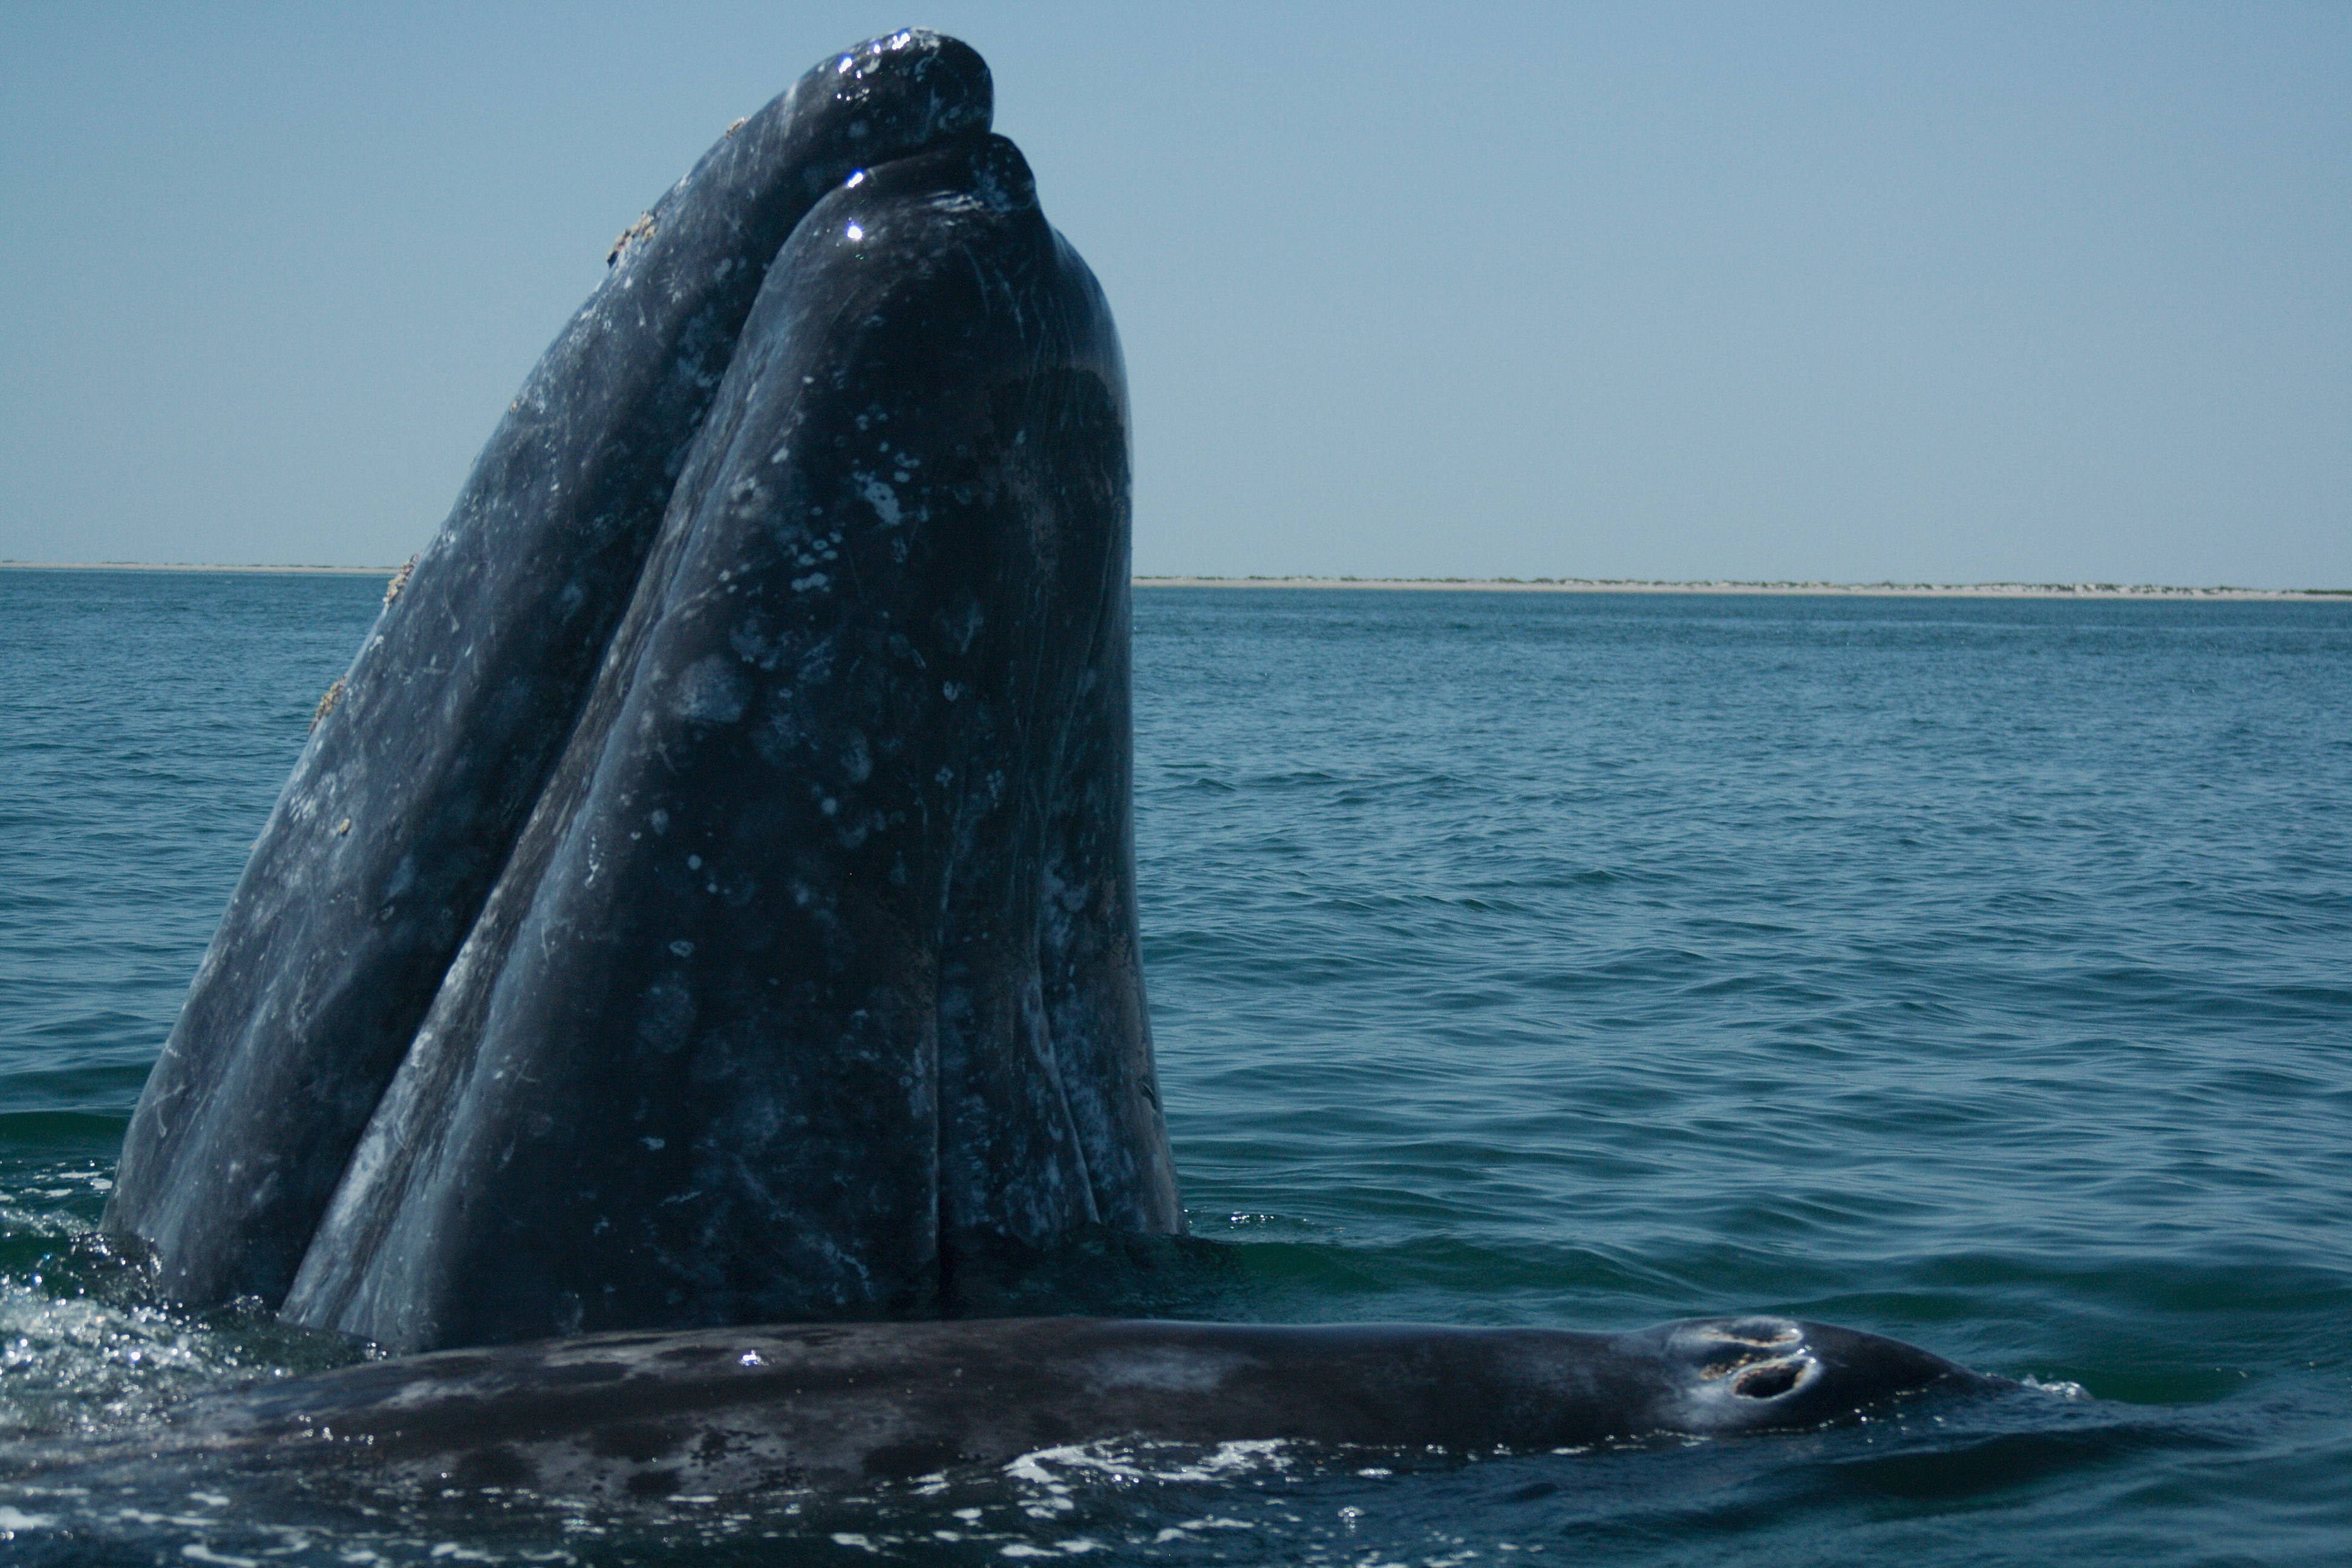 Grey whale partially above surface